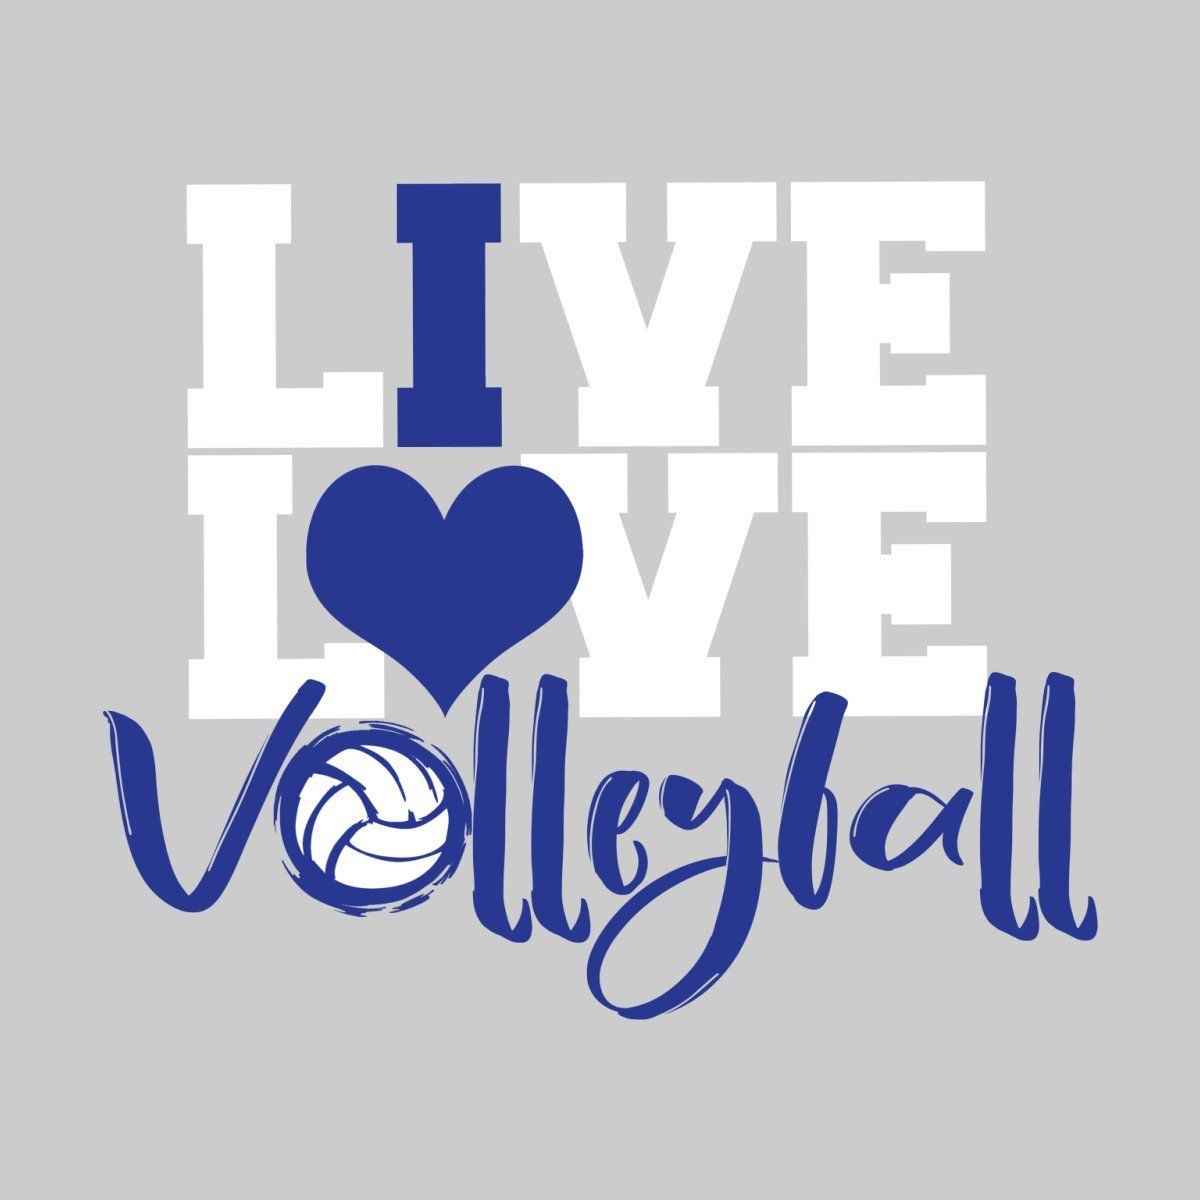 Live Love Volleyball Volleyball wallpaper, Volleyball